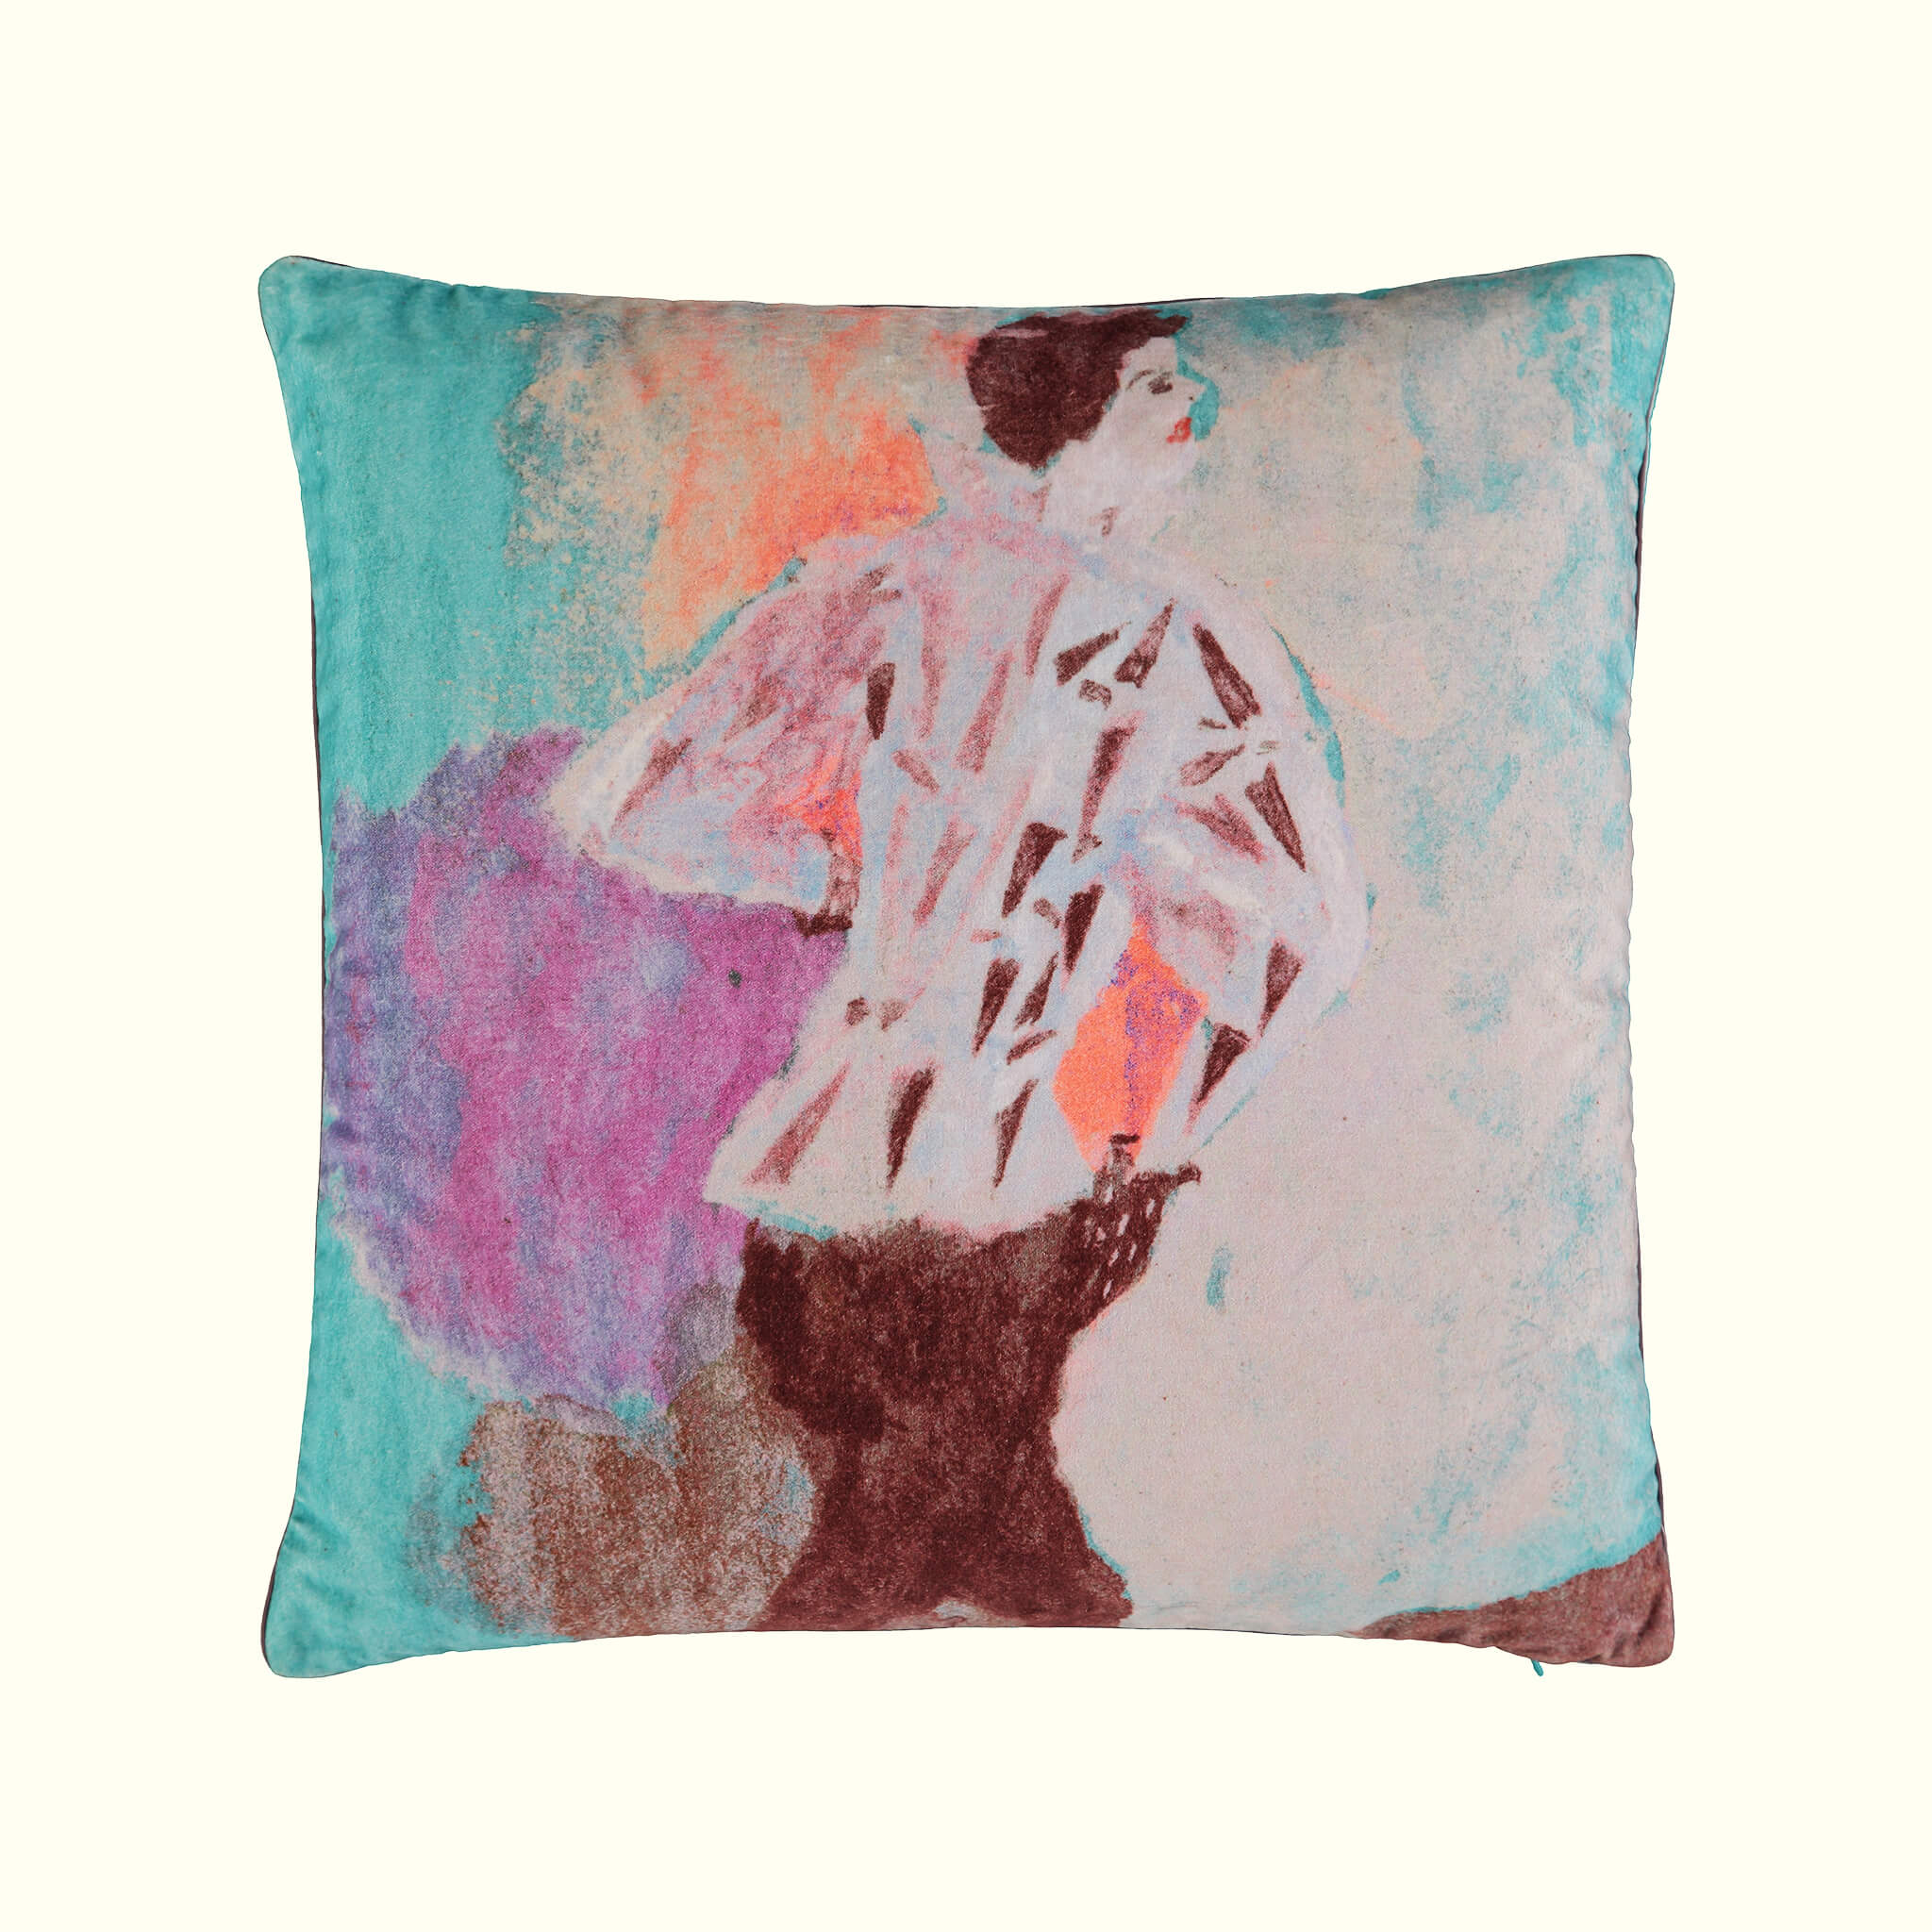 A luxury British cotton velvet cushion by GVE in aqua Conversation print design.